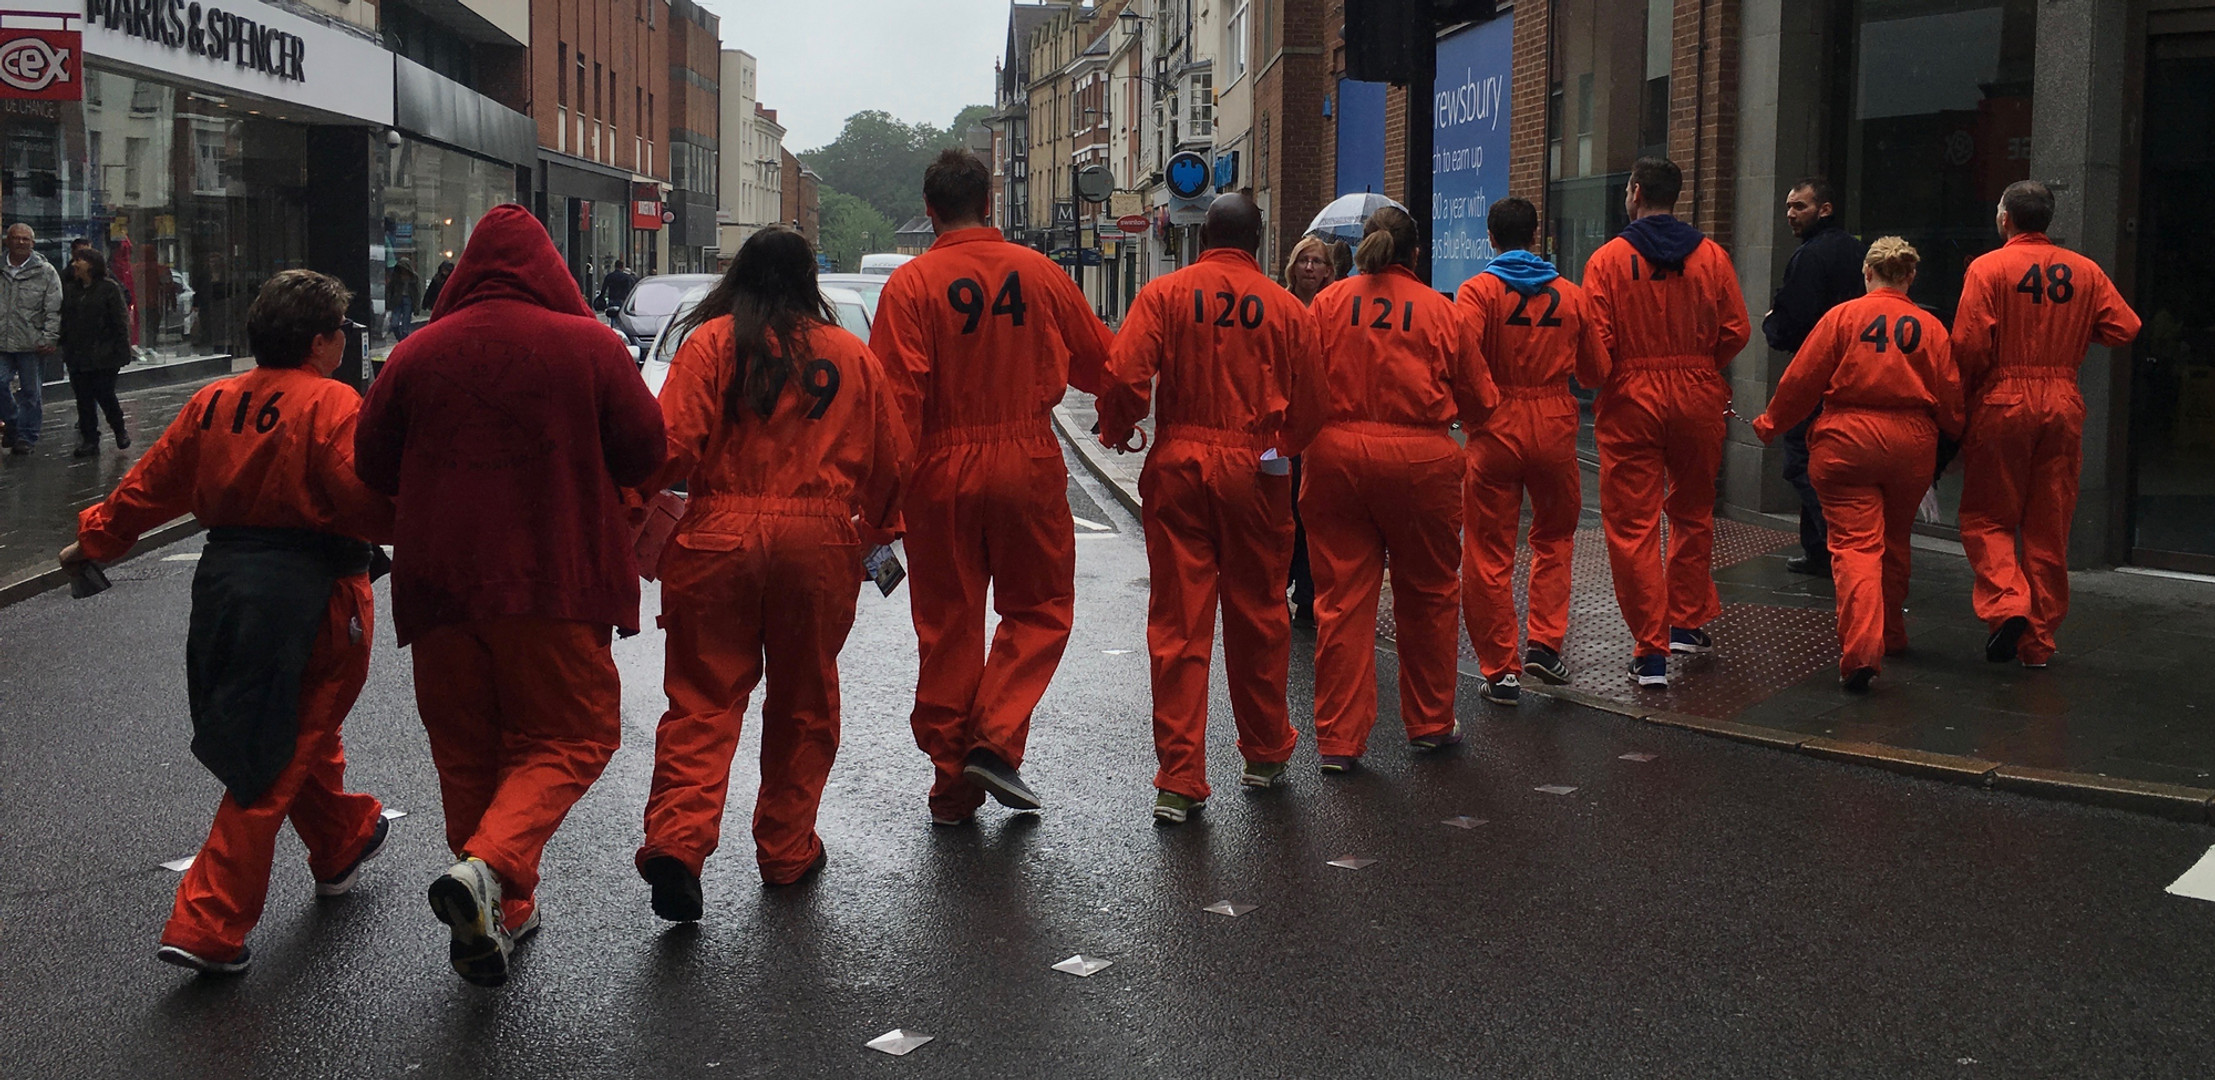 inmate chain gang immersive events